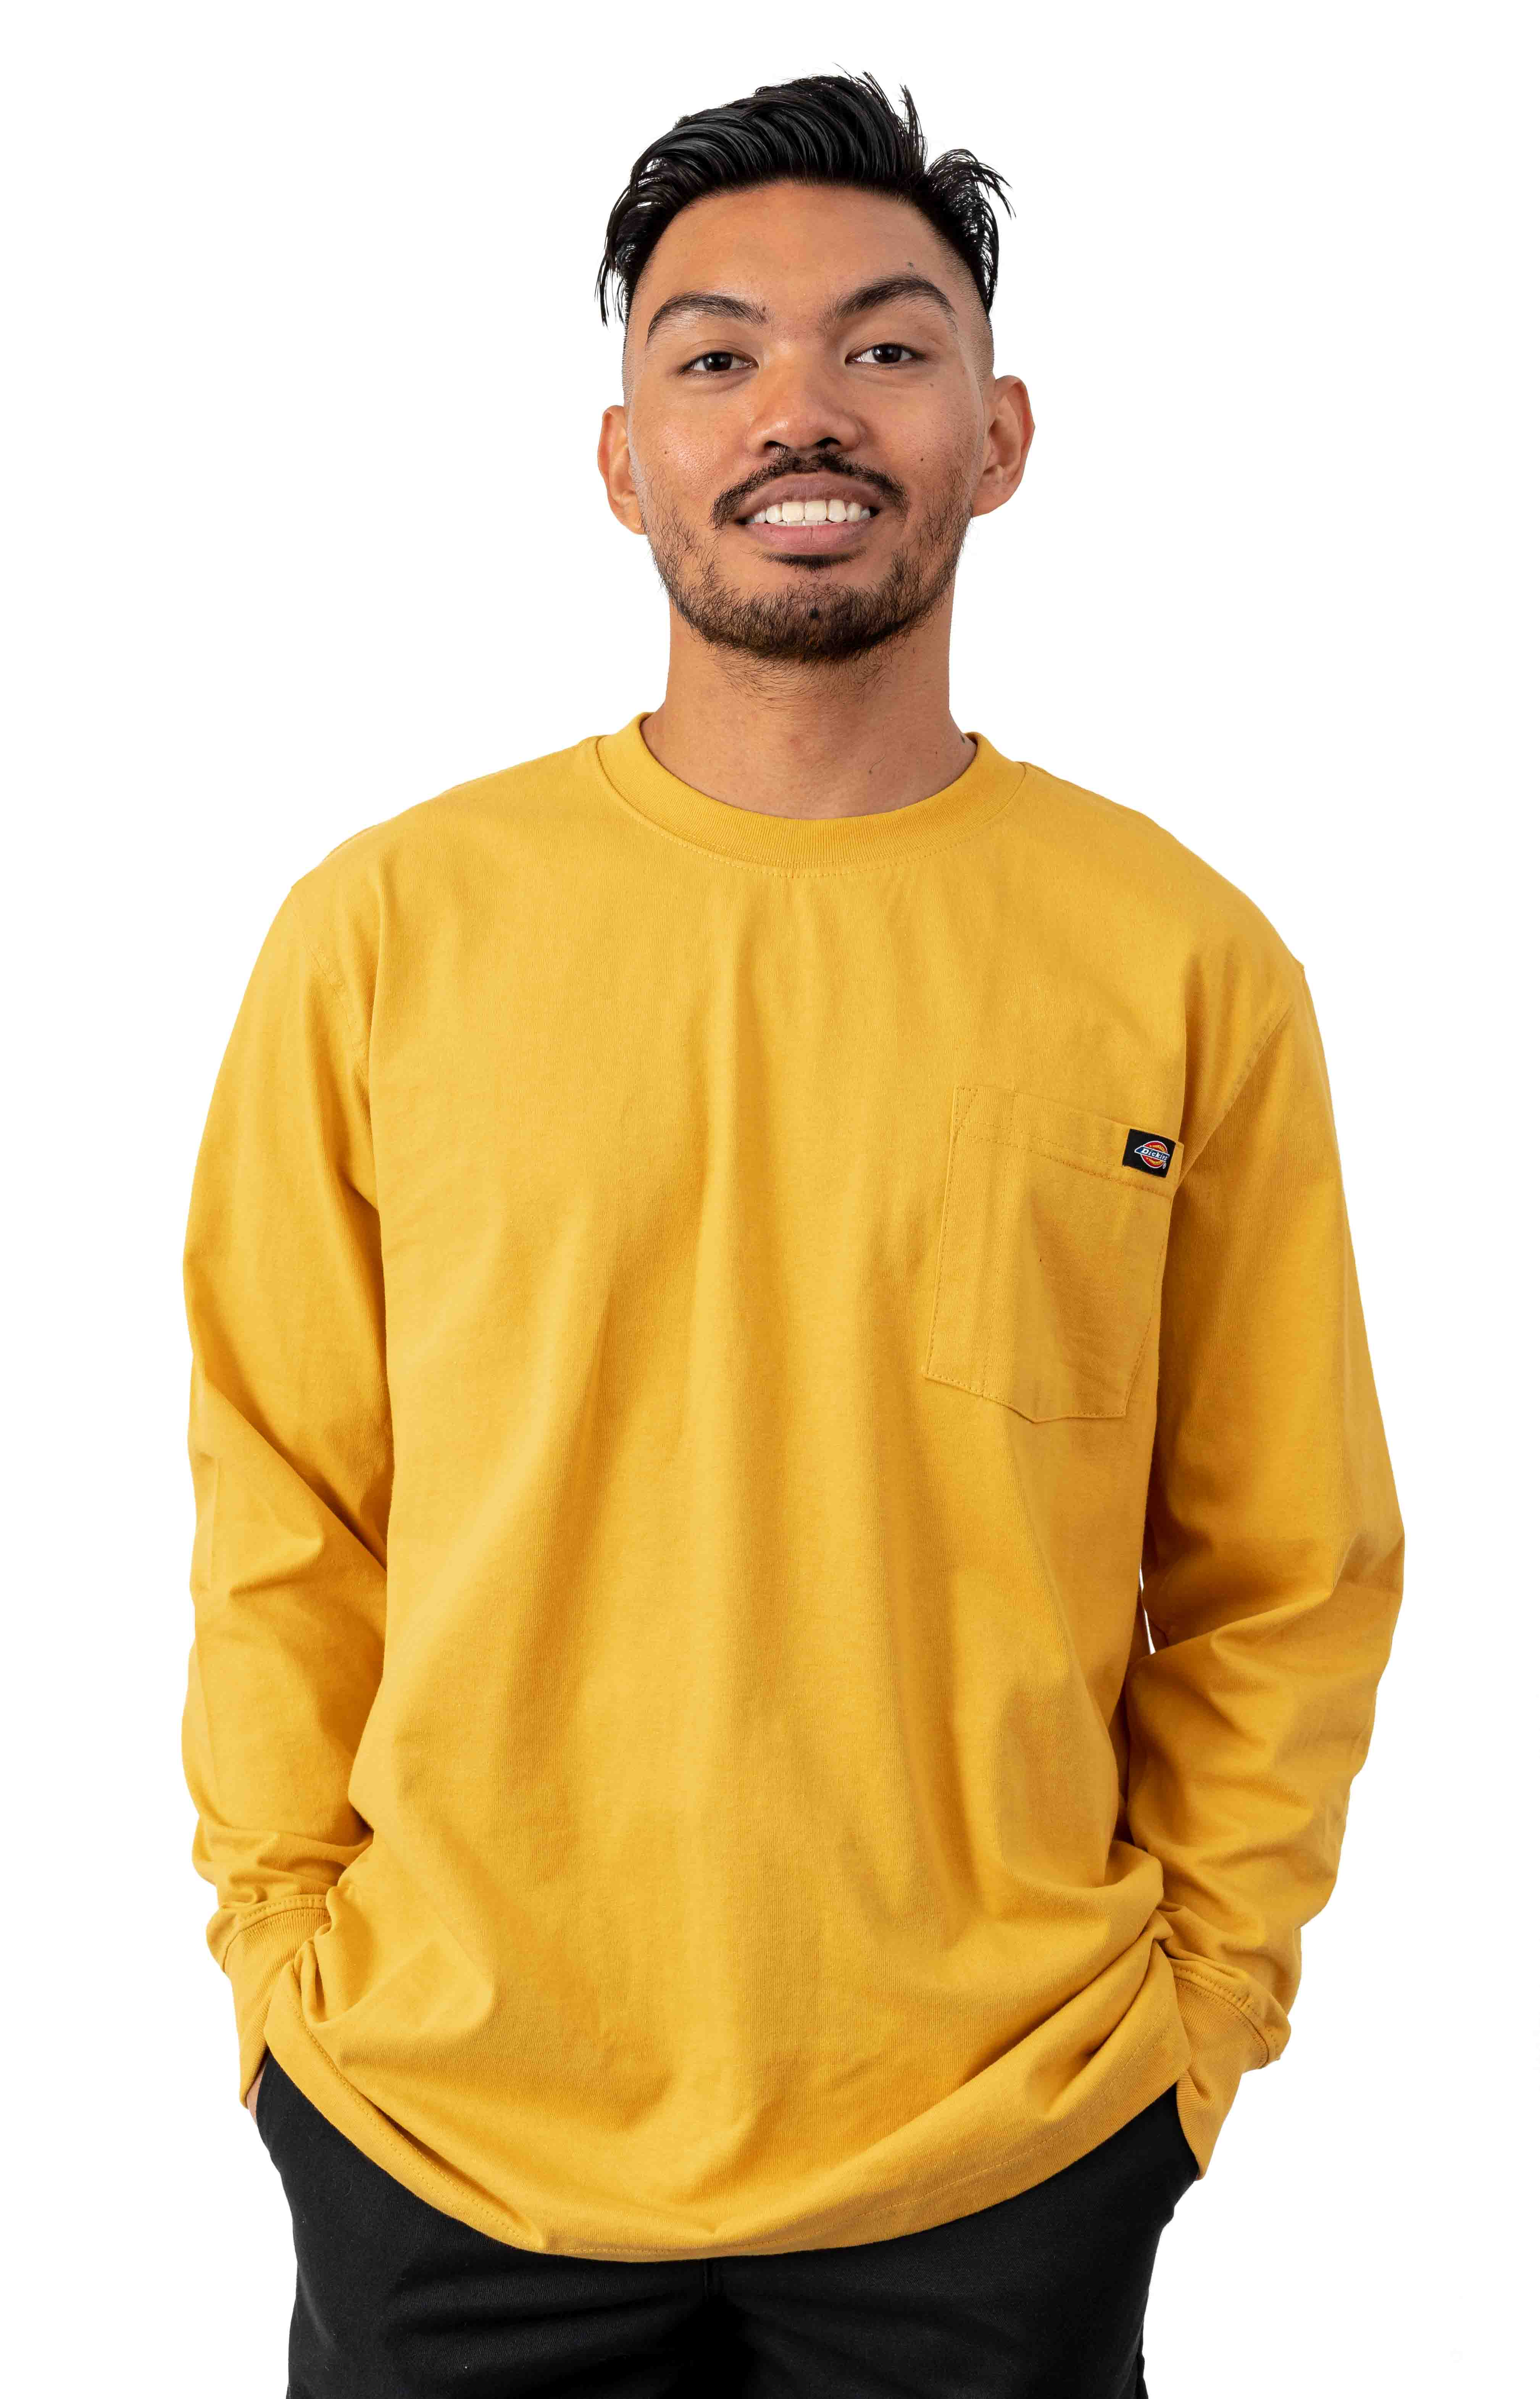 (WL450ID) Long Sleeve Heavyweight Crew Neck Shirt - Dijon Yellow